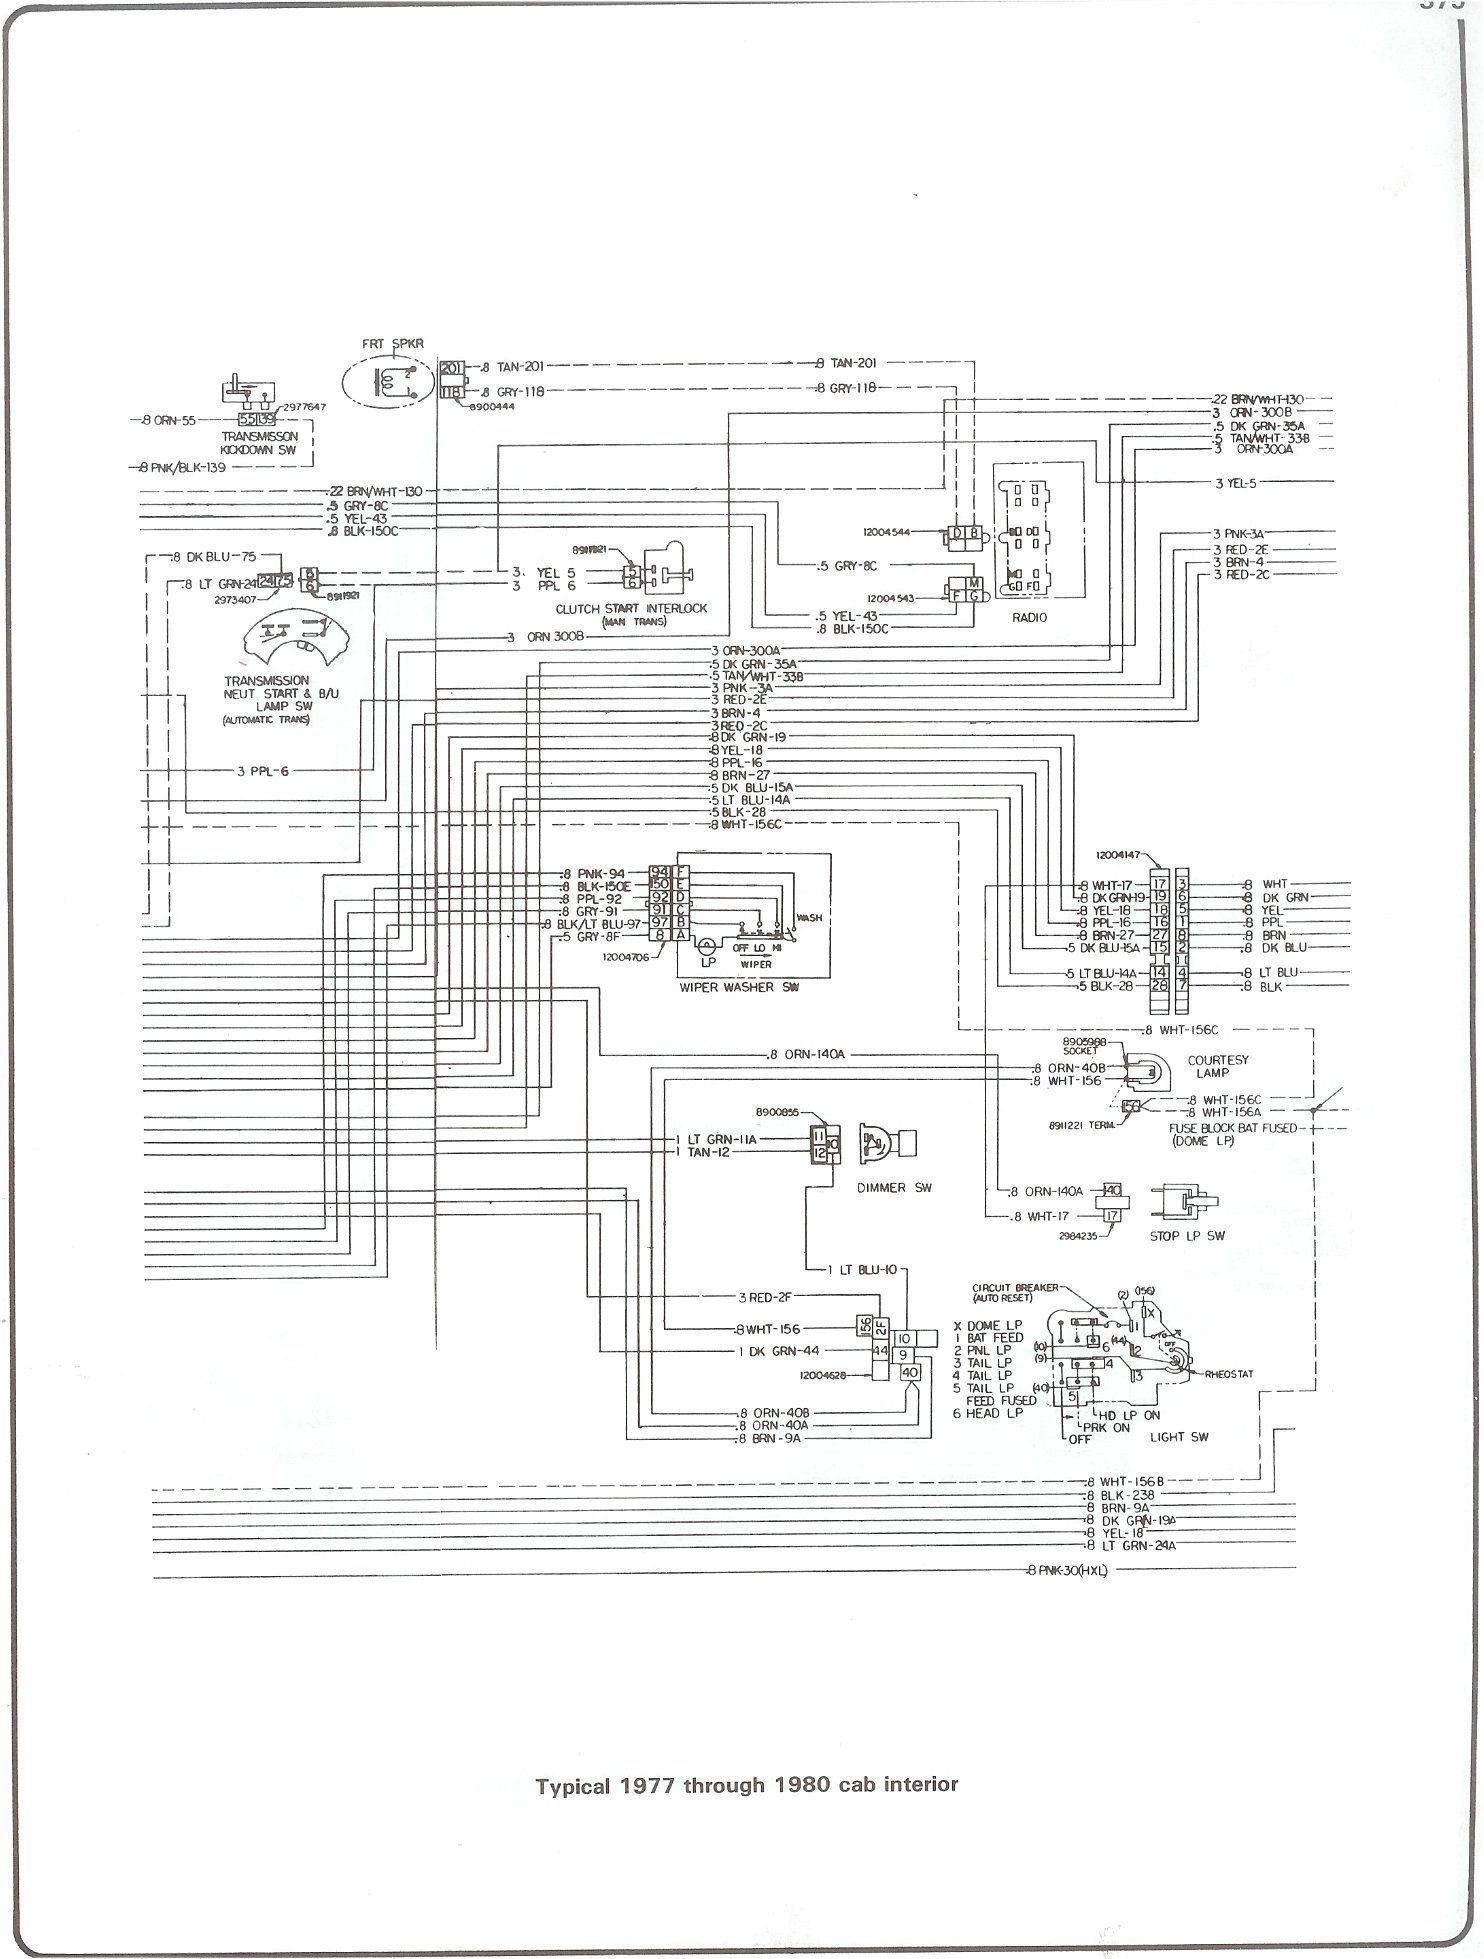 77 80_cab_inter complete 73 87 wiring diagrams 1982 chevy truck wiring diagram at gsmx.co